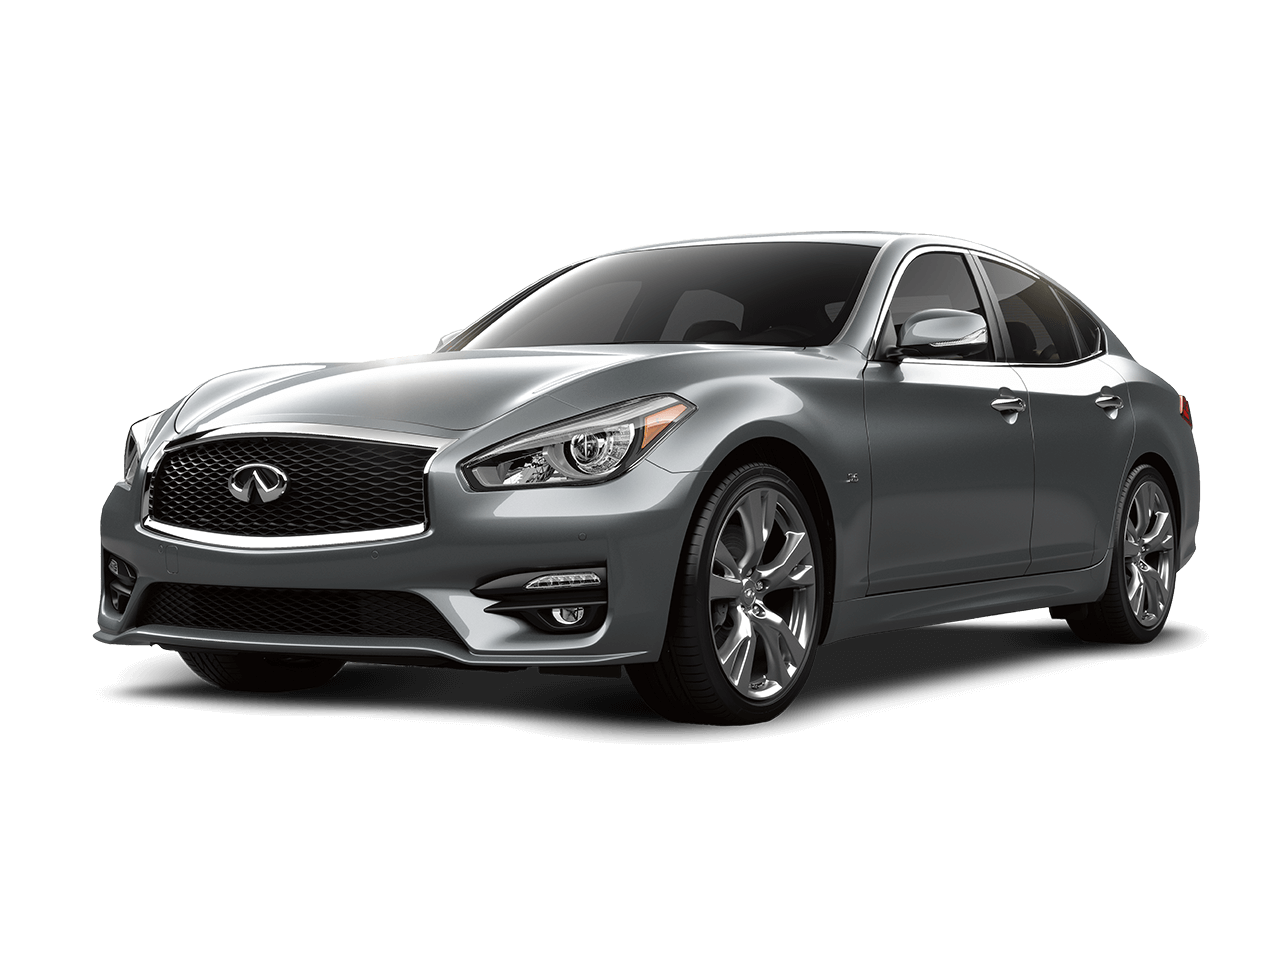 2017 infiniti q70 dealer serving denver infiniti of denver. Black Bedroom Furniture Sets. Home Design Ideas